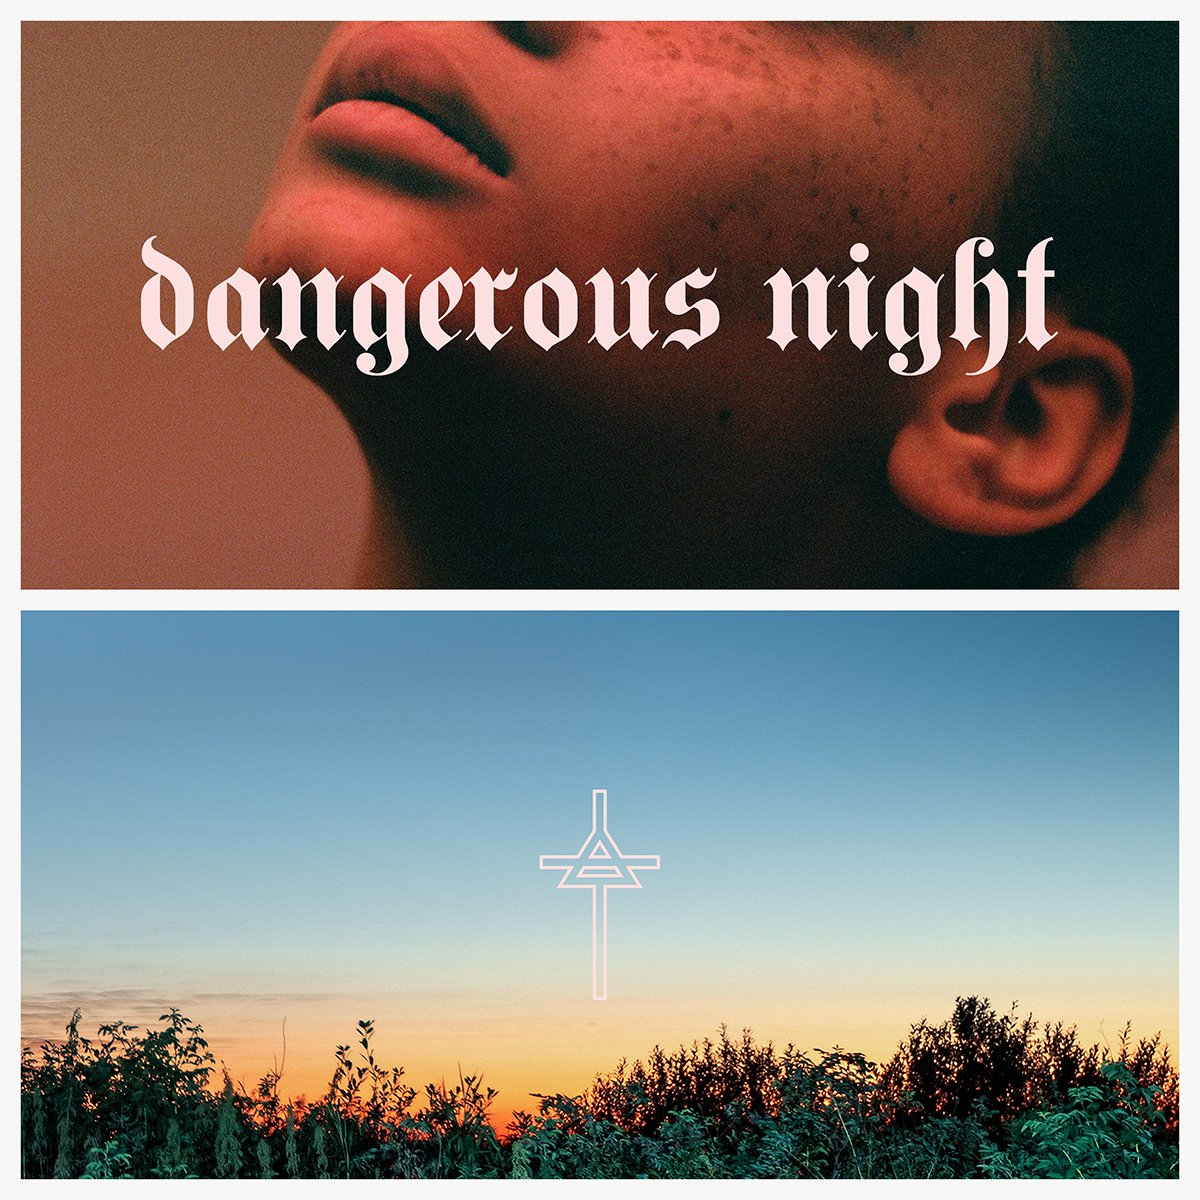 THE NEW SINGLE // #DangerousNight. Pre-save + hear it first on @Spotify, JAN 25!!! https://t.co/NvCDHgbX1b https://t.co/bOGonvPqjF